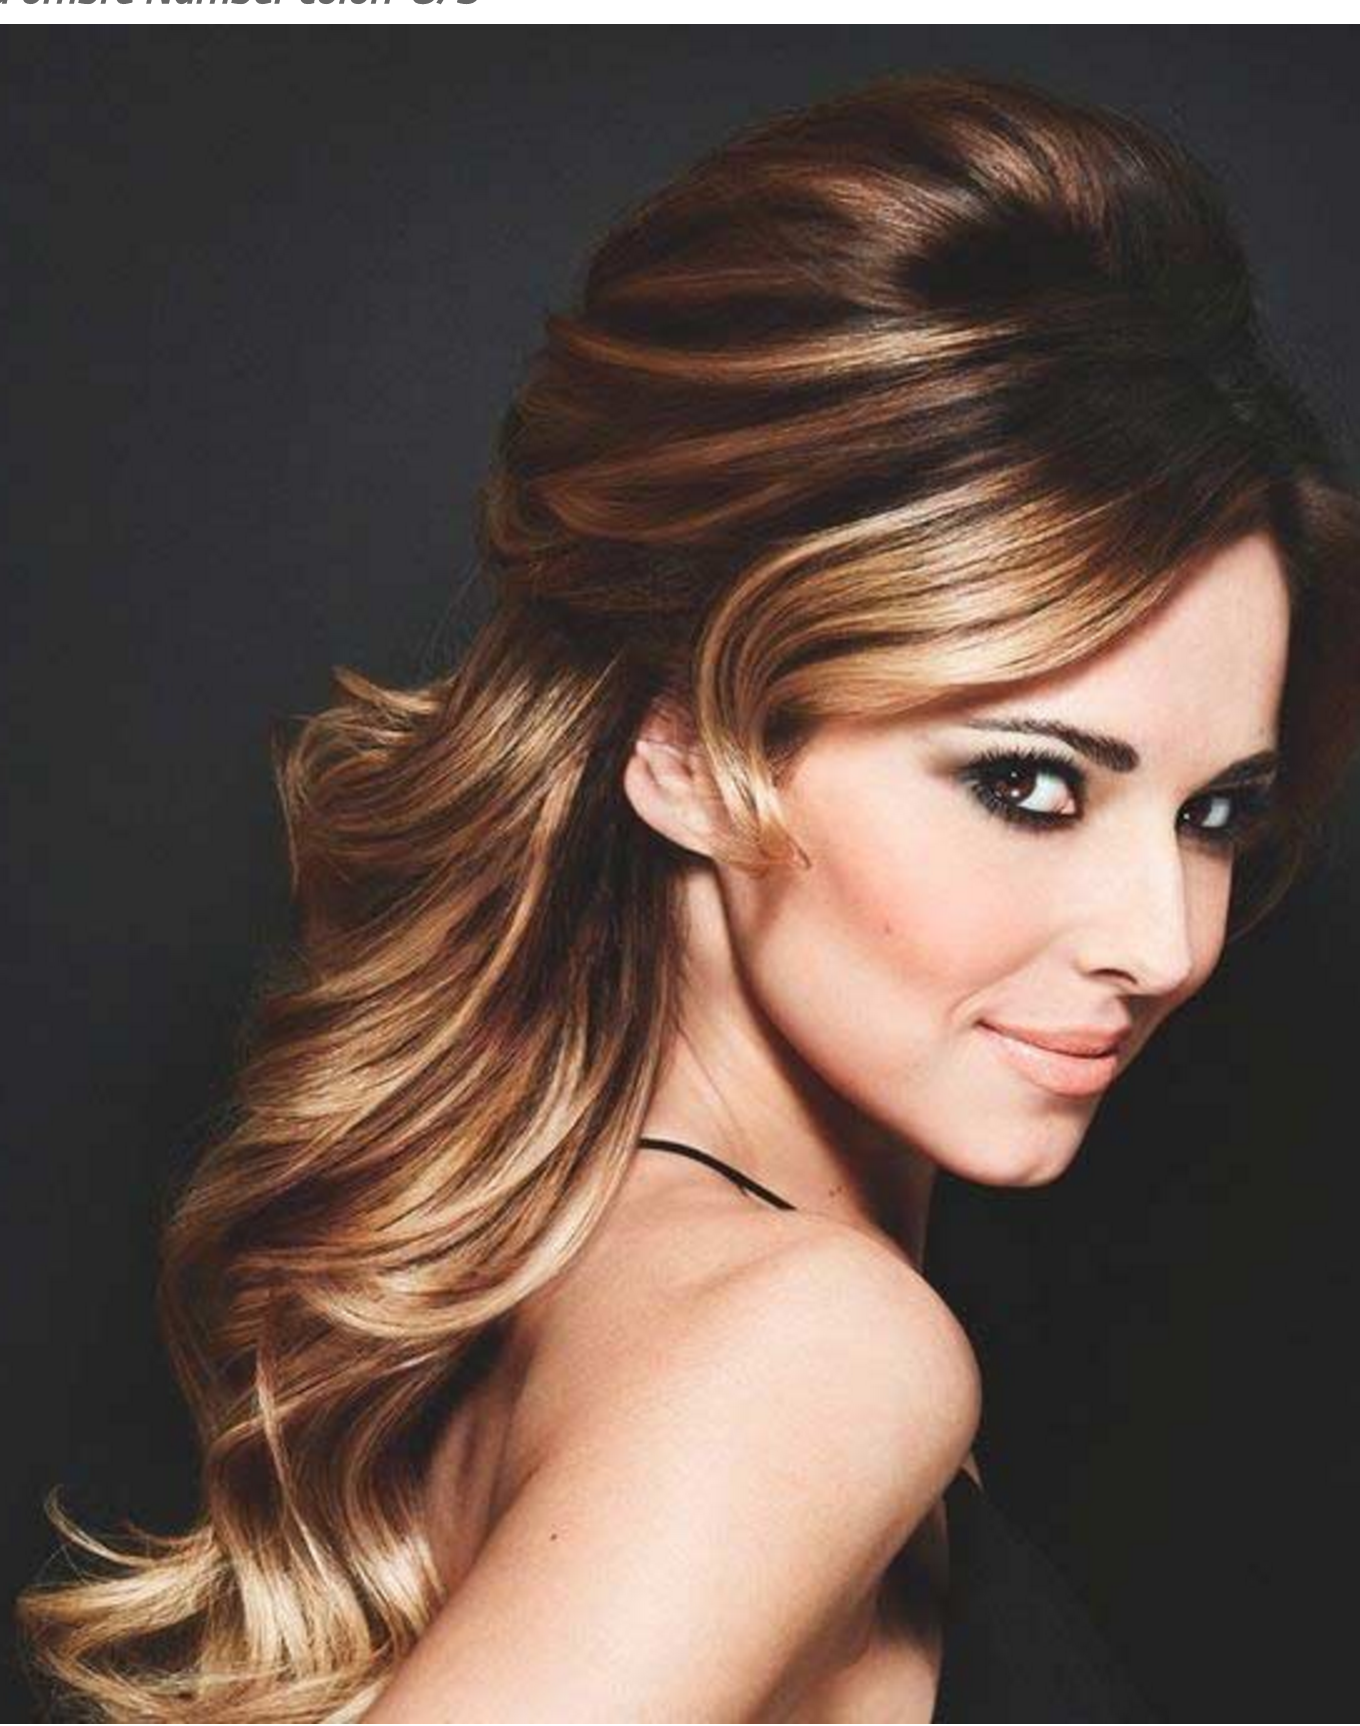 Cheryl Cole Hairstyles Event Hairstyles Wedding Hairstyles Hair Beauty Cheryl Cole Hair Stylish Hair Hair Styles